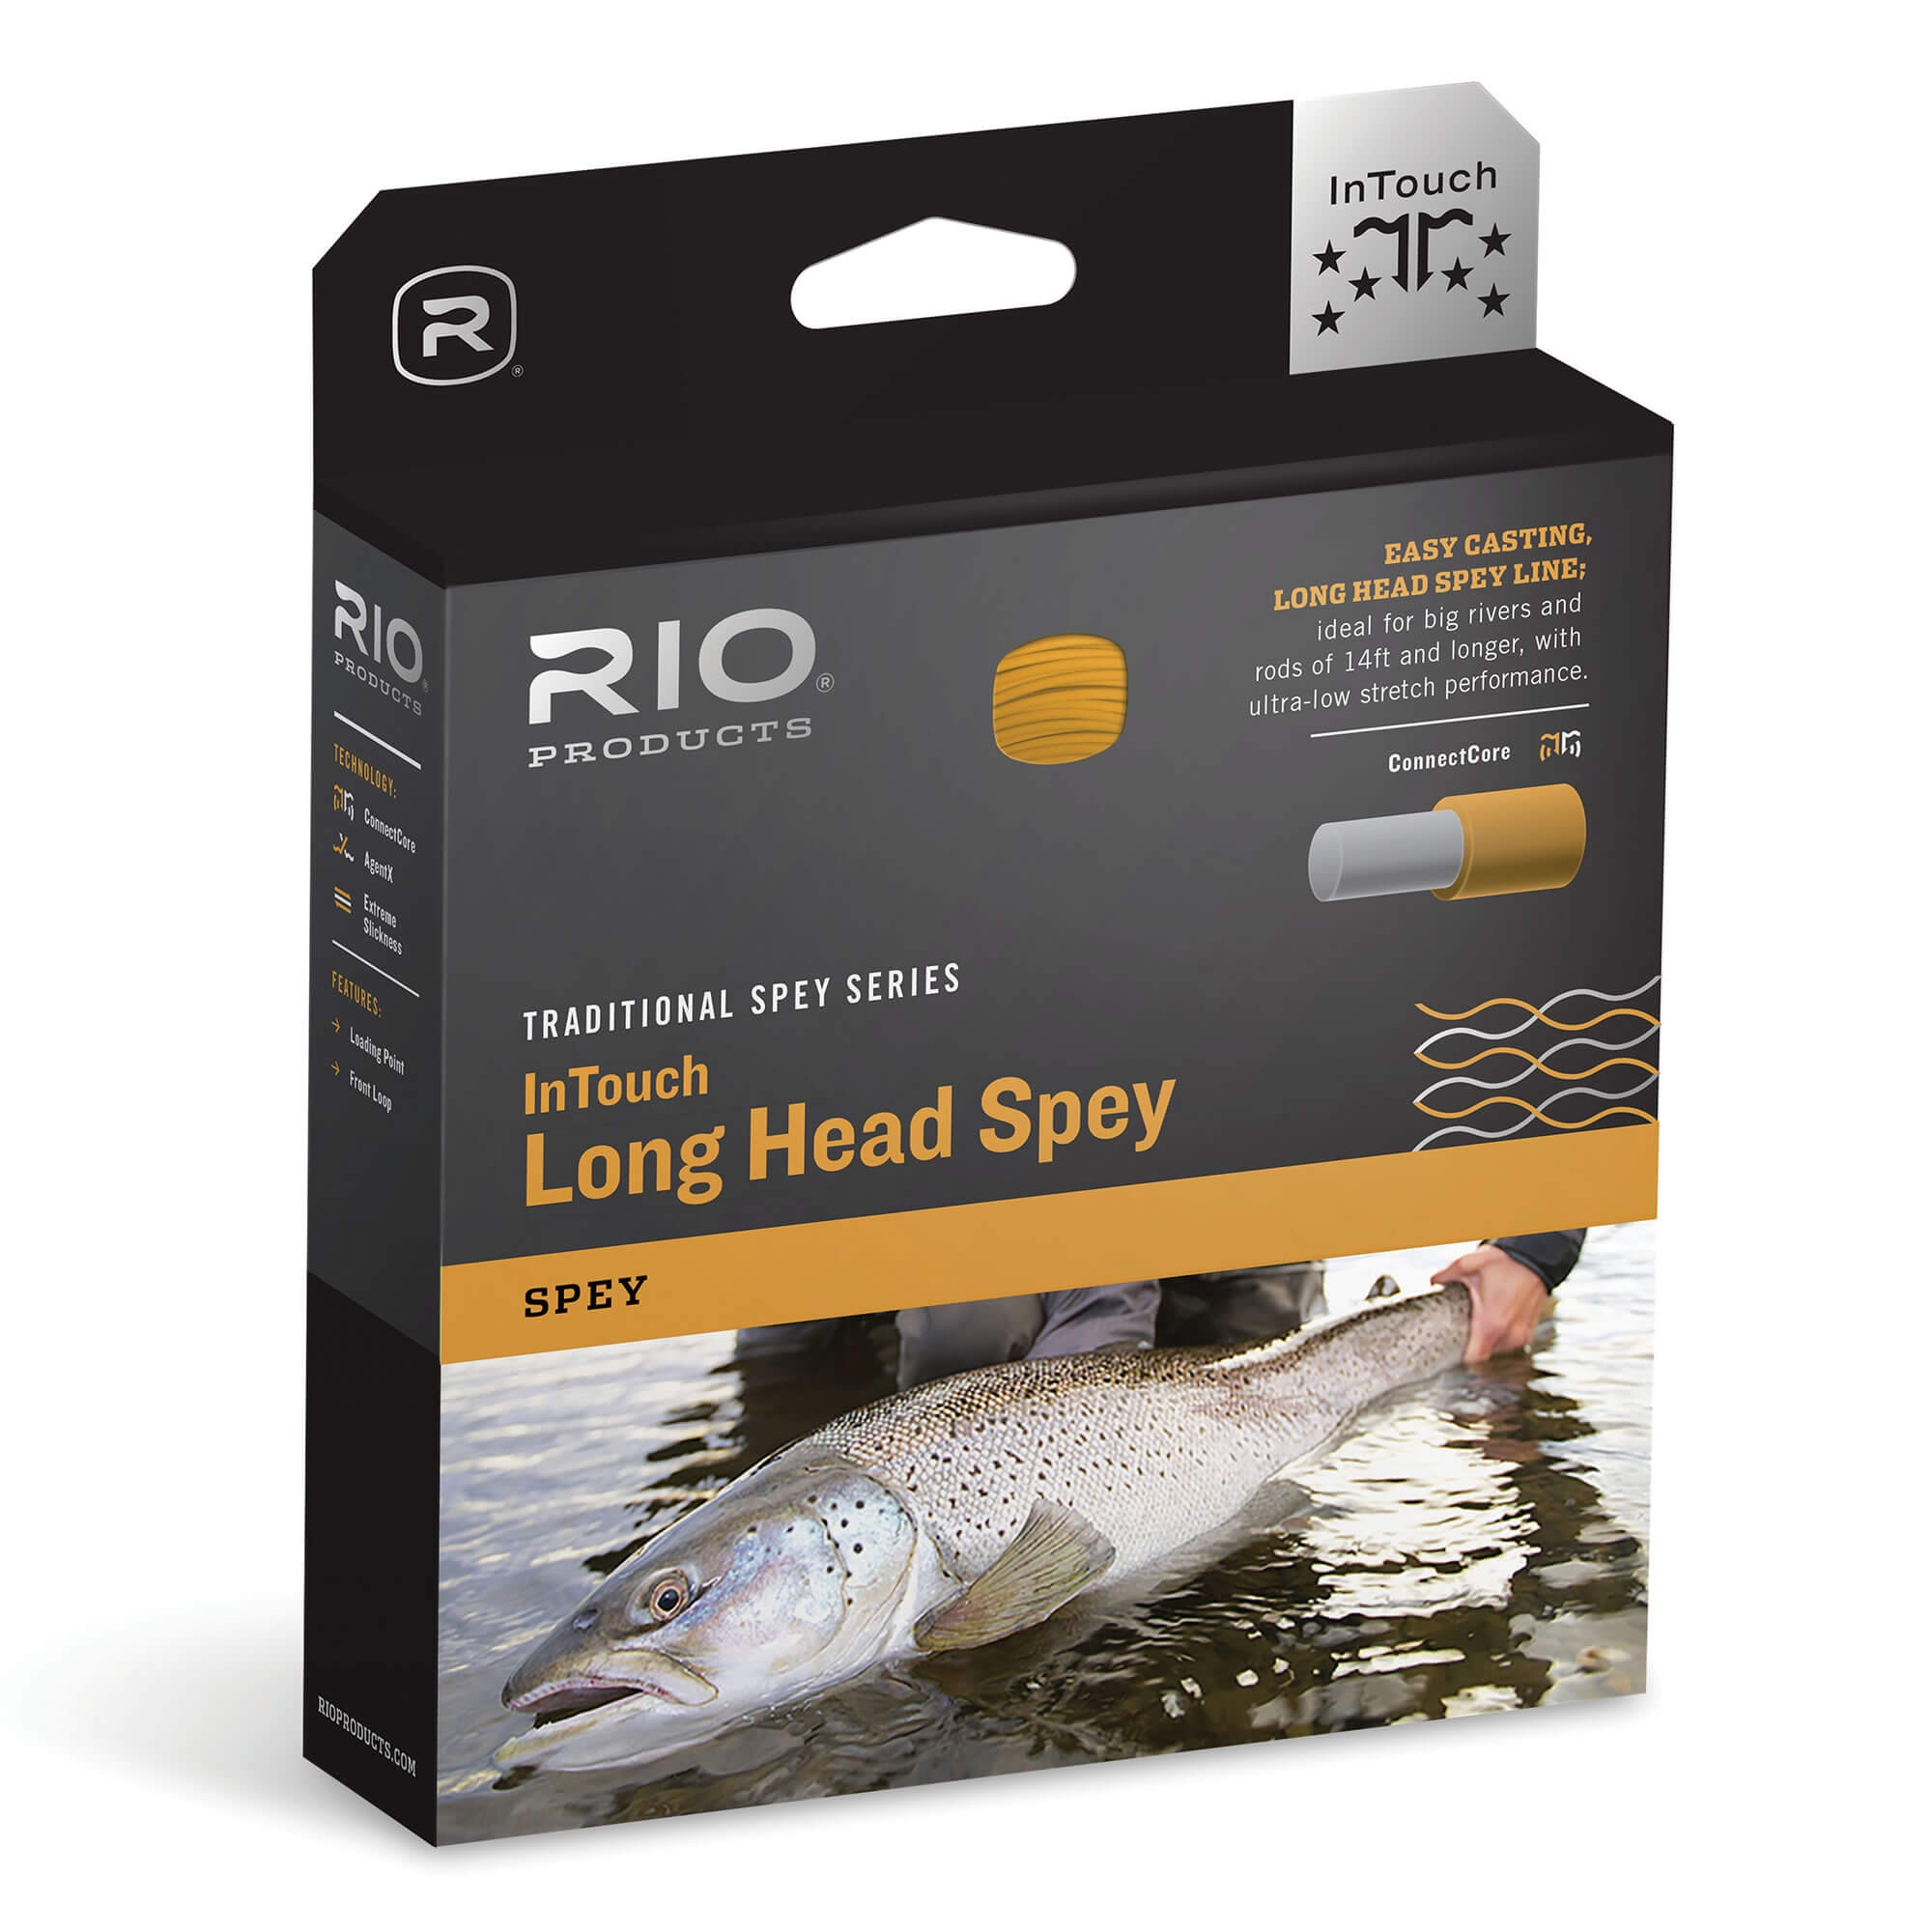 InTouch Long Head Spey